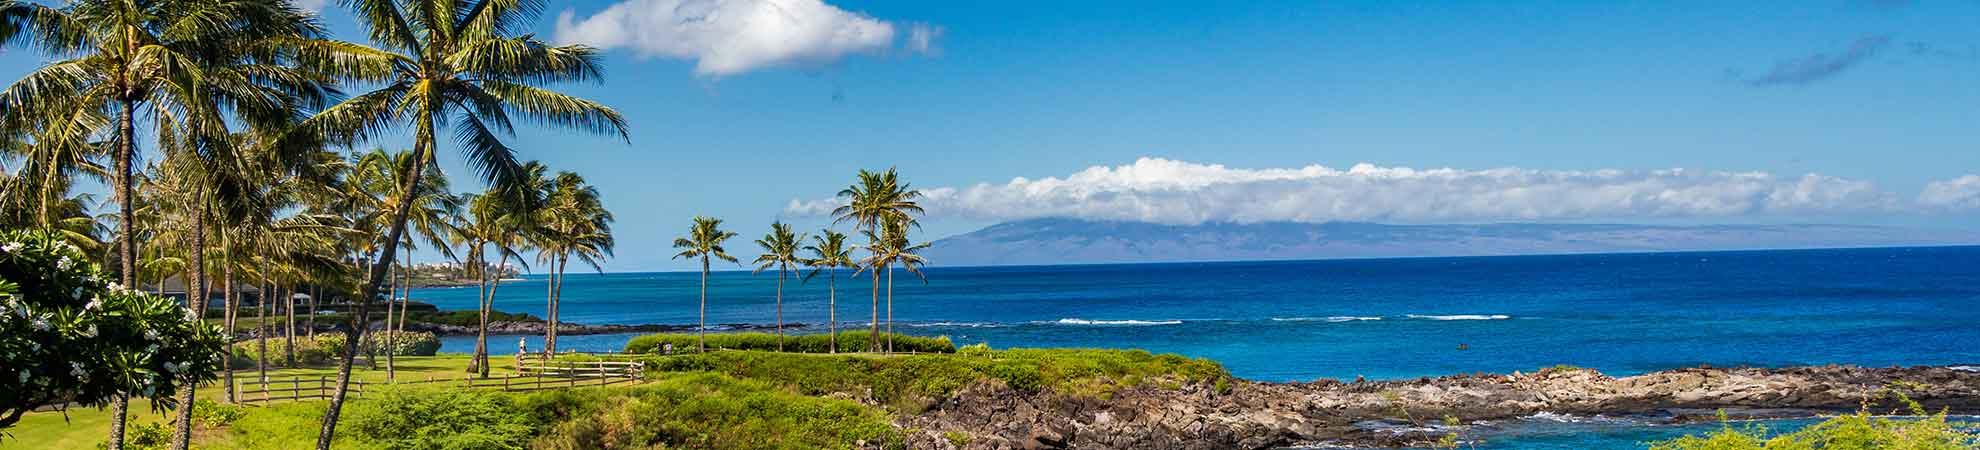 Billet avion Hawaii : comment trouver des vols à destination d'Hawaii et choisir son vol ?